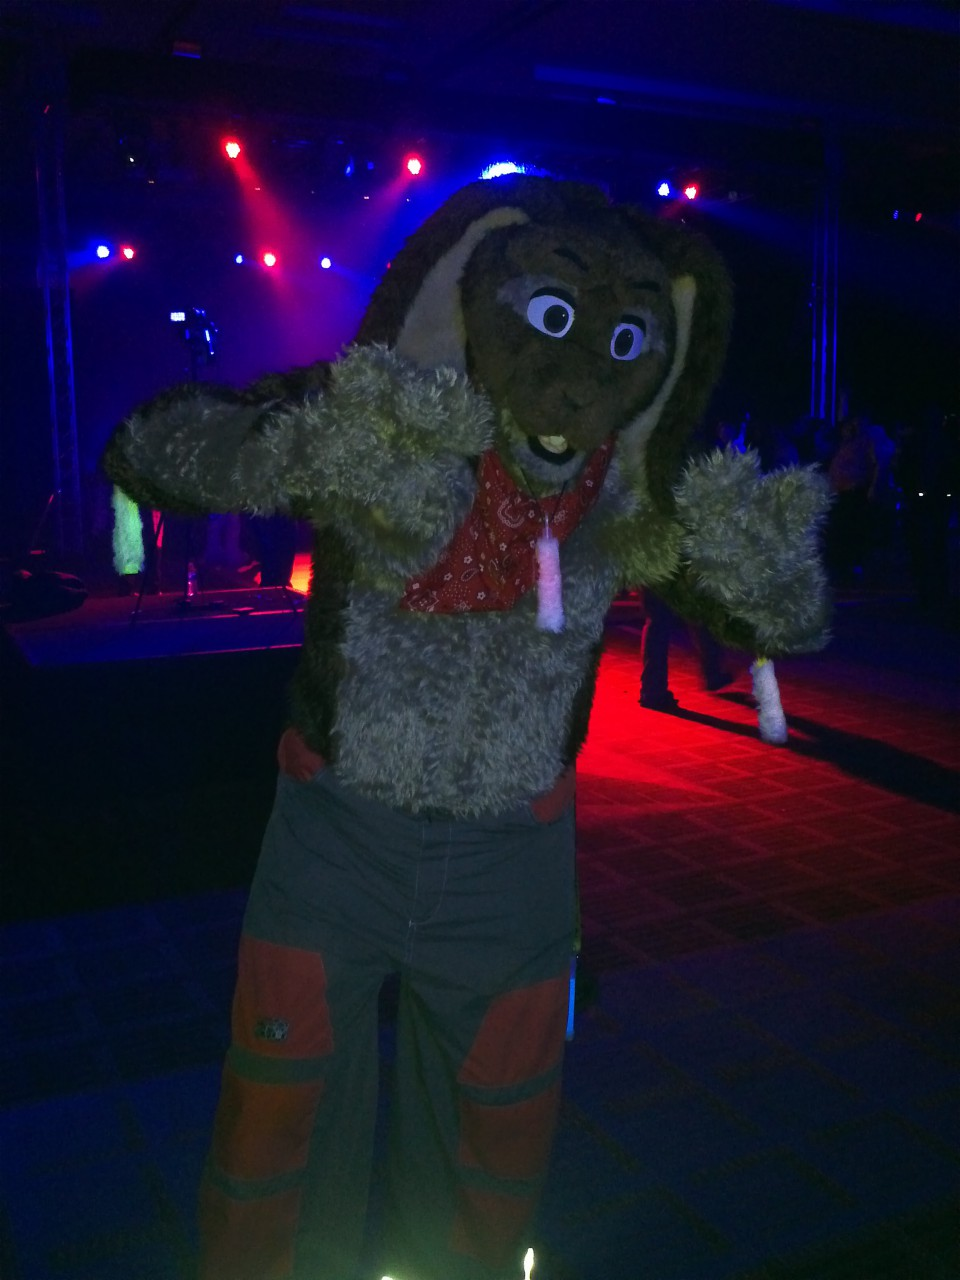 Most recent image: FUZZY GLOWSTICKS at MFF!